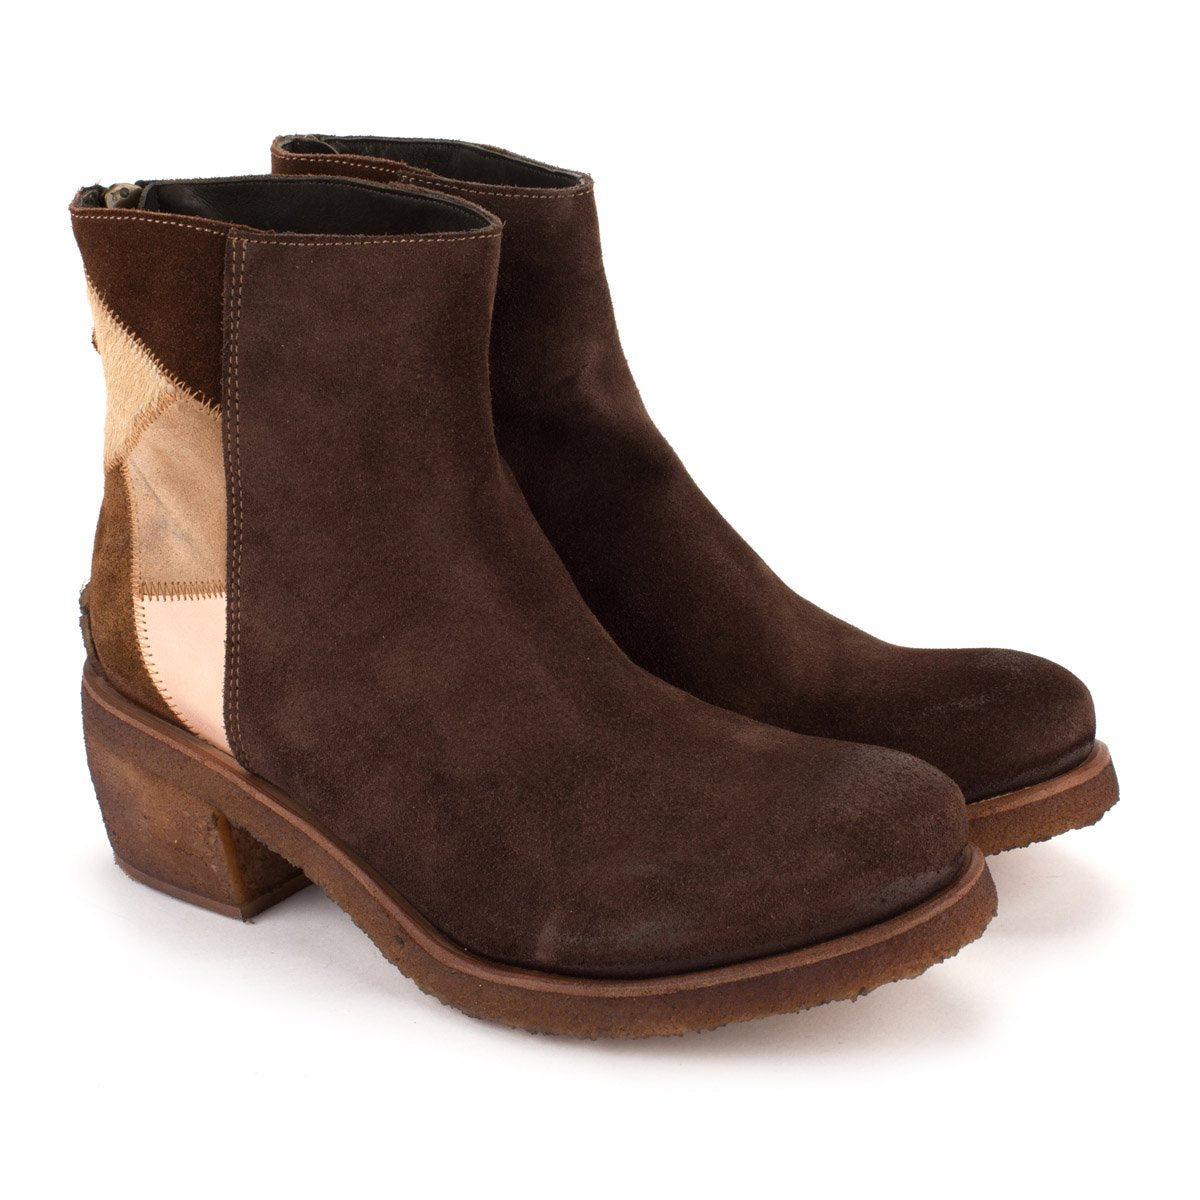 TEXAS 03 SUEDE BOOTS – Patchwork Coffe